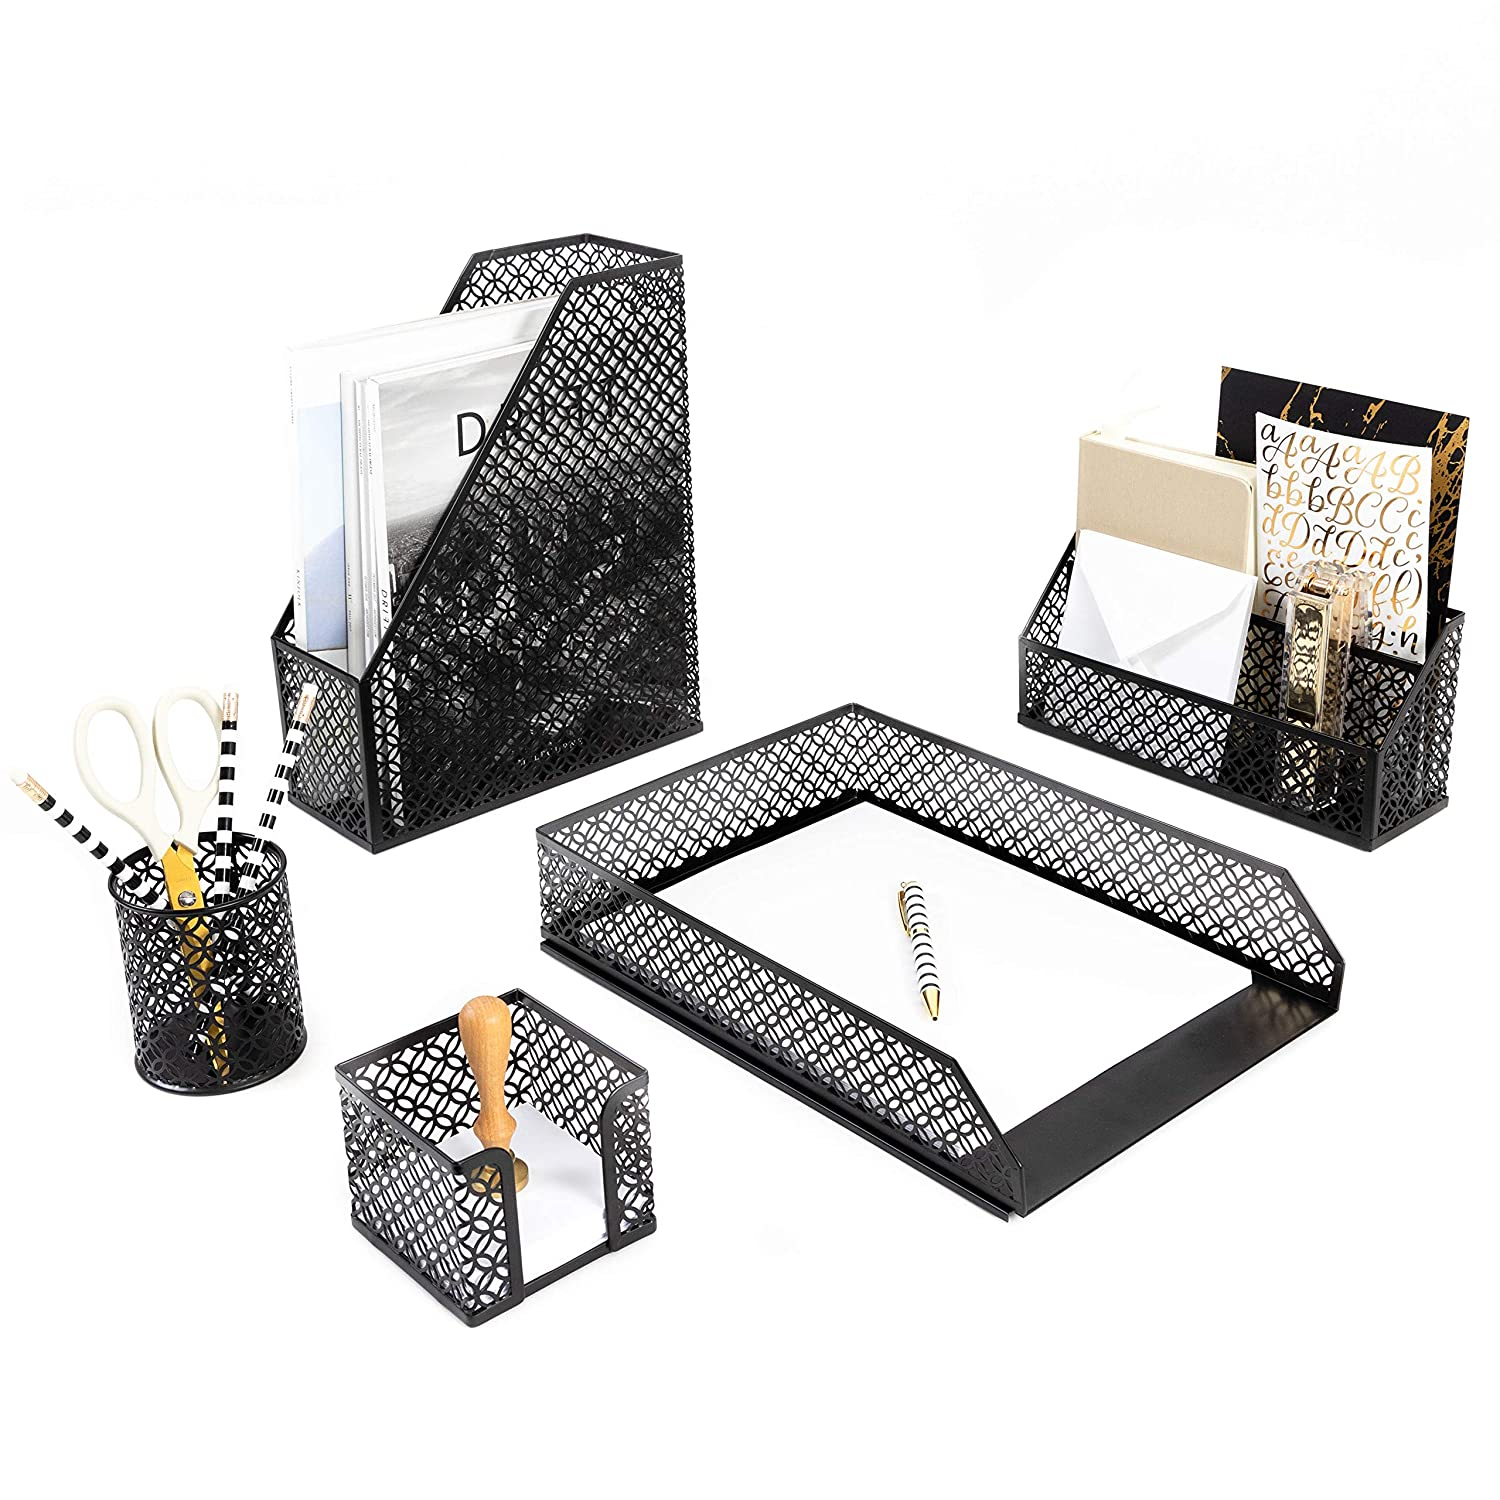 Blu Monaco Black Desk Organizer - 5 Piece Desk Accessories Set - Letter - Mail Organizer, Sticky Note Holder, Pen Cup, Magazine File Holder, Paper - Document Tray - Black